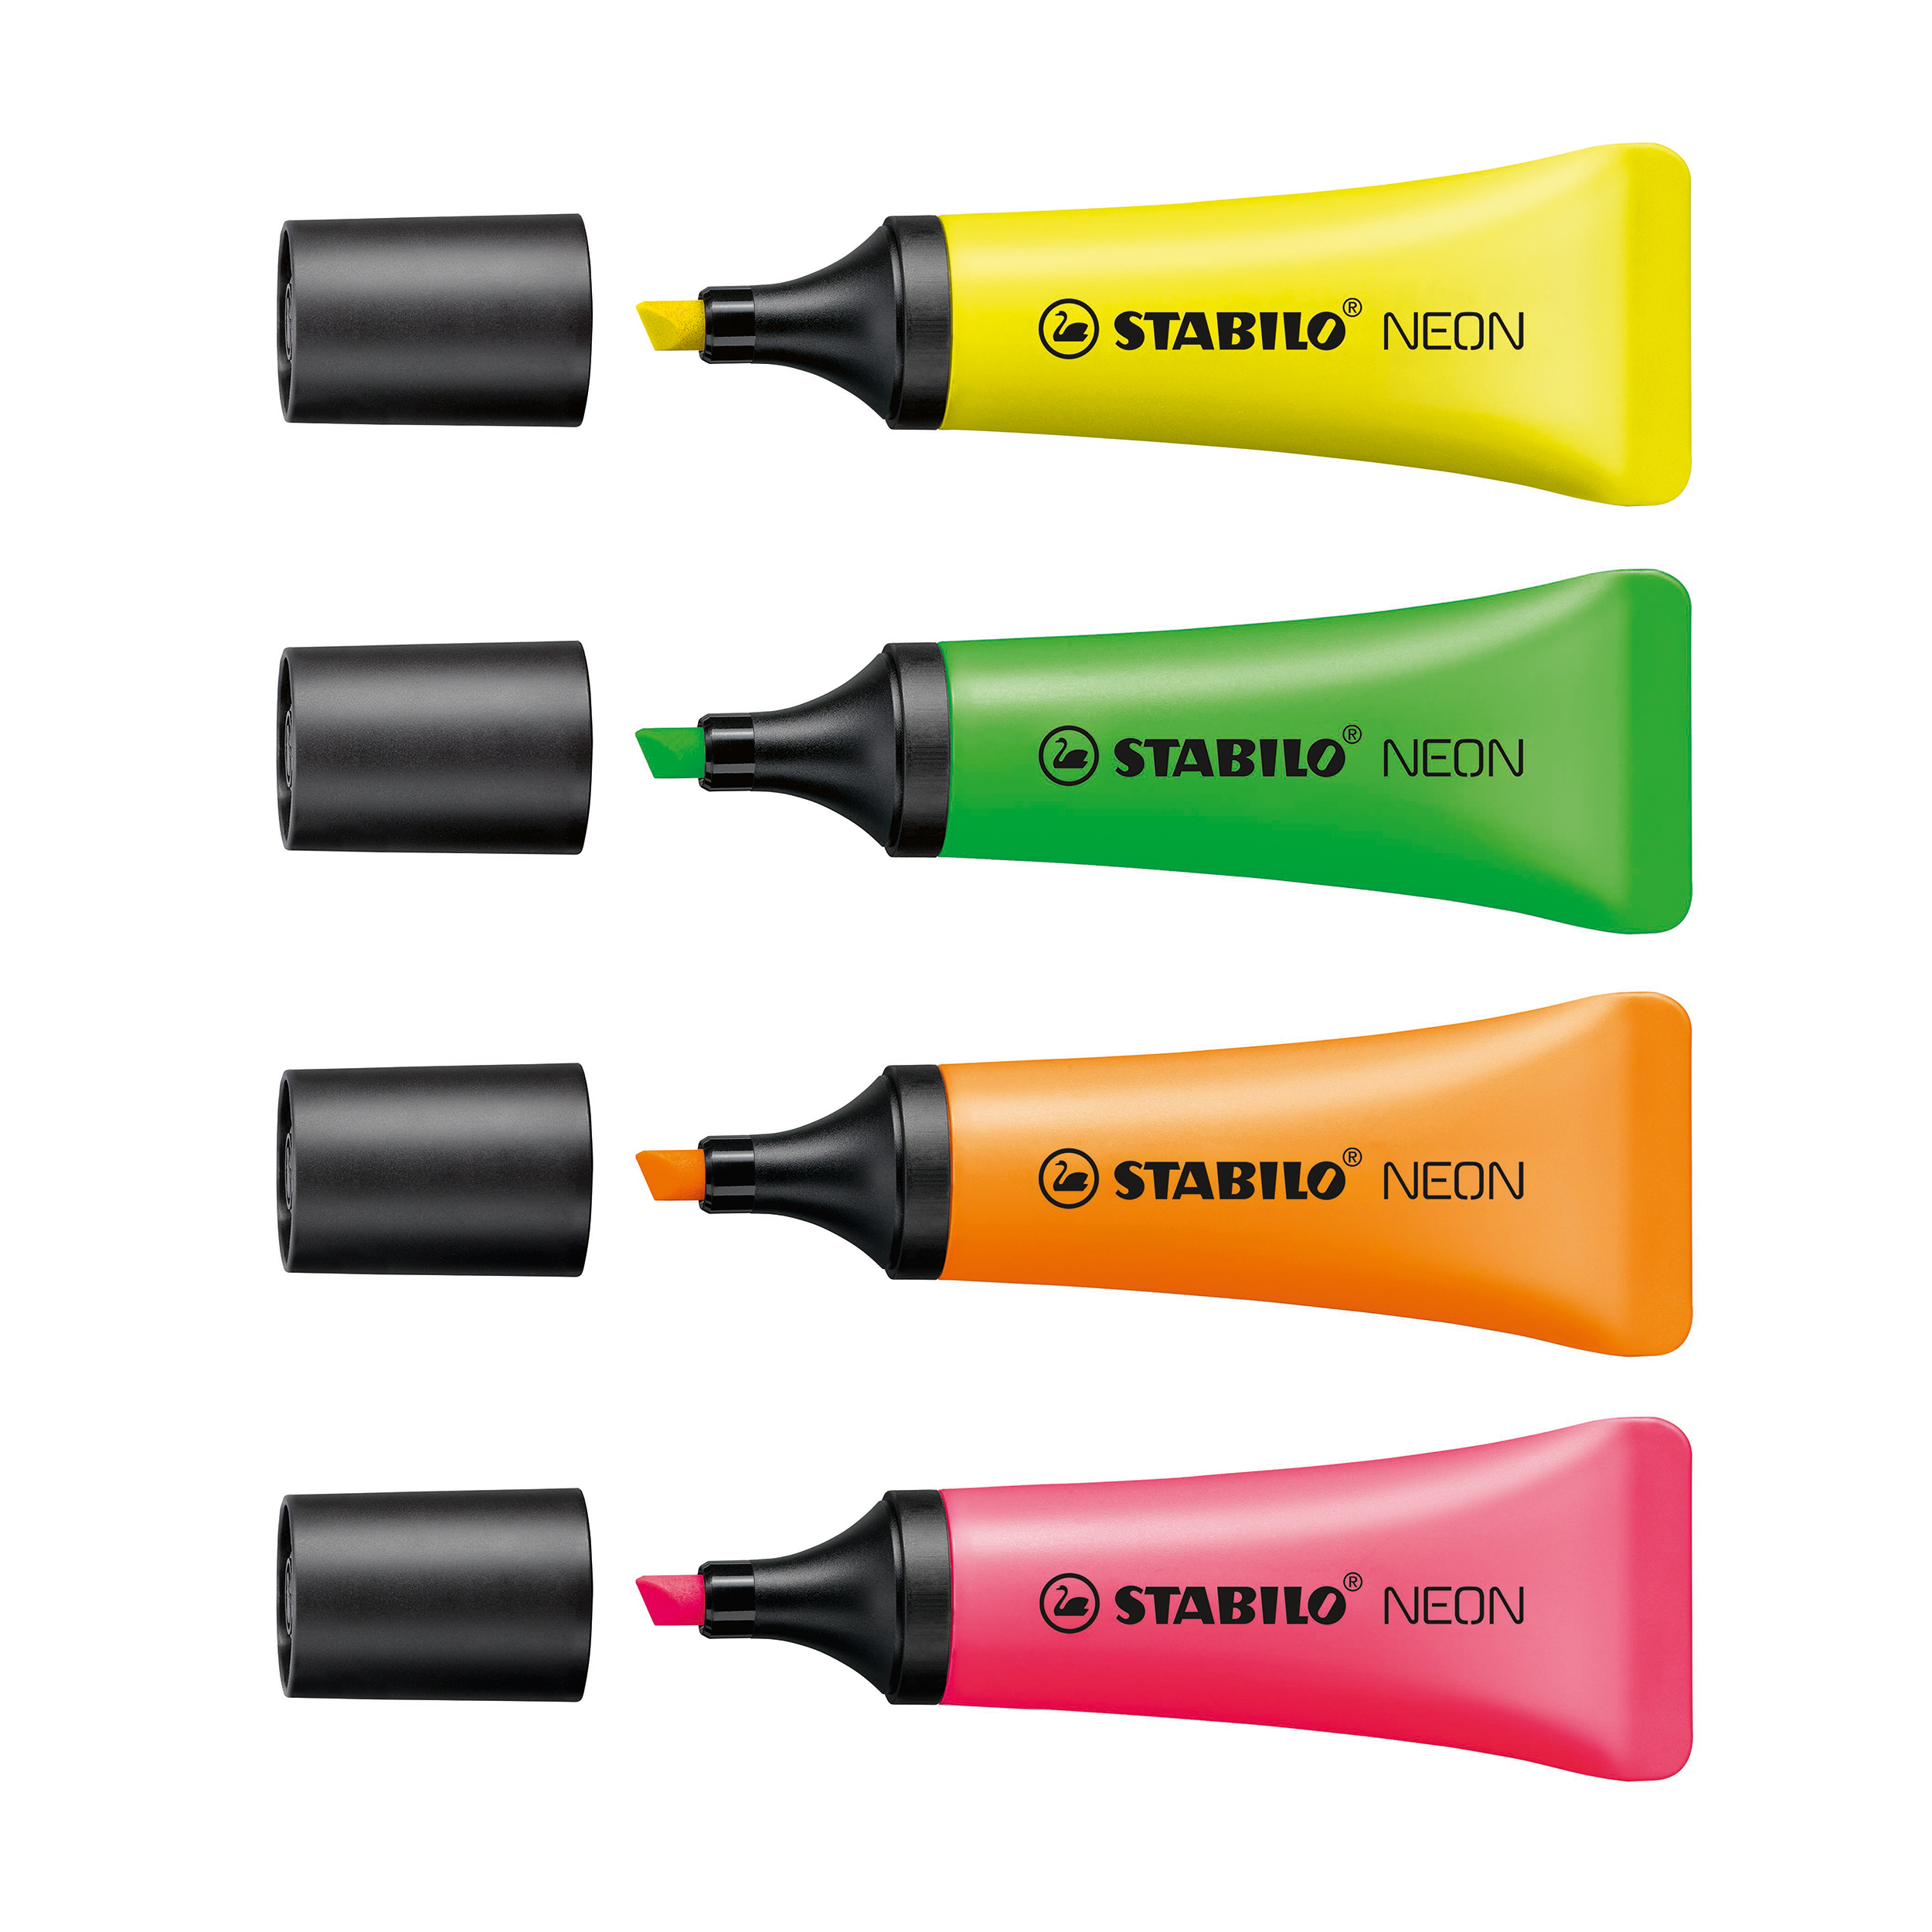 Highlighters Stabilo Neon Highlighter Chisel Tip 2-5mm Wallet Neon Ink Assorted Ref 72/4-1 Pack 4